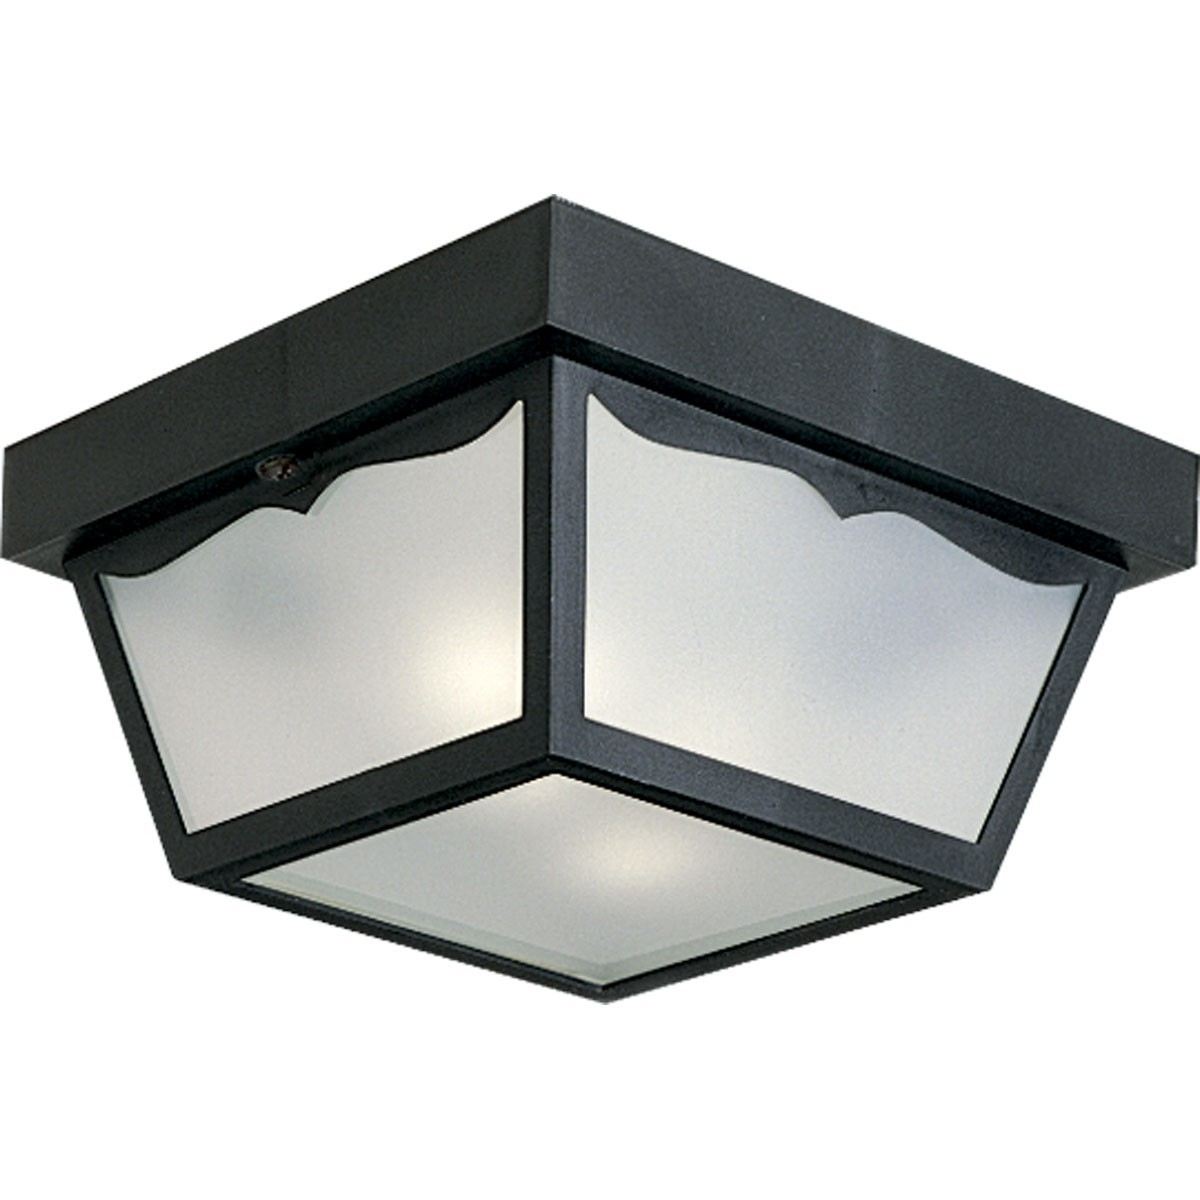 Famous Outdoor Lighting: Astonishing Dusk To Dawn Outdoor Ceiling Light Led With Regard To Dusk To Dawn Outdoor Ceiling Lights (View 10 of 20)